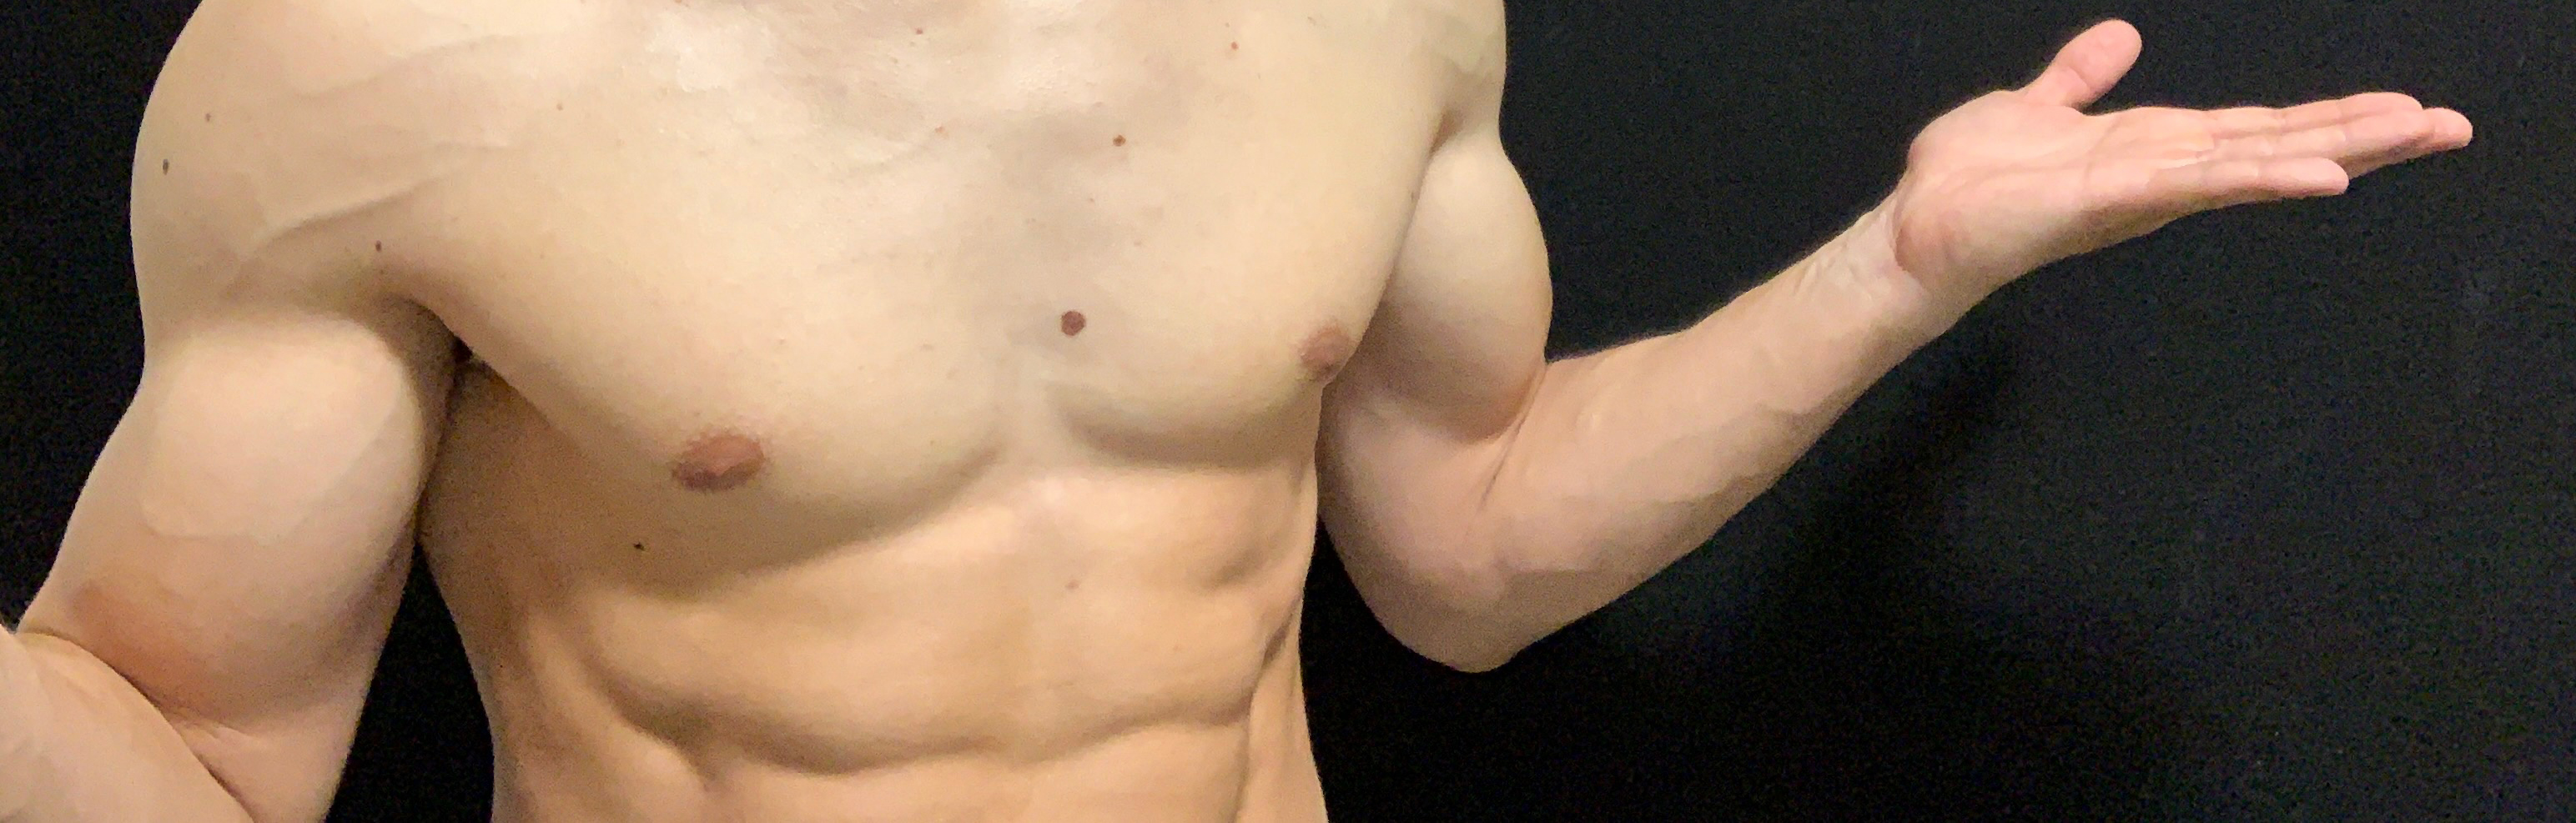 How to keep a six pack after surgery… Round 2 of surgery on a 6 pack!